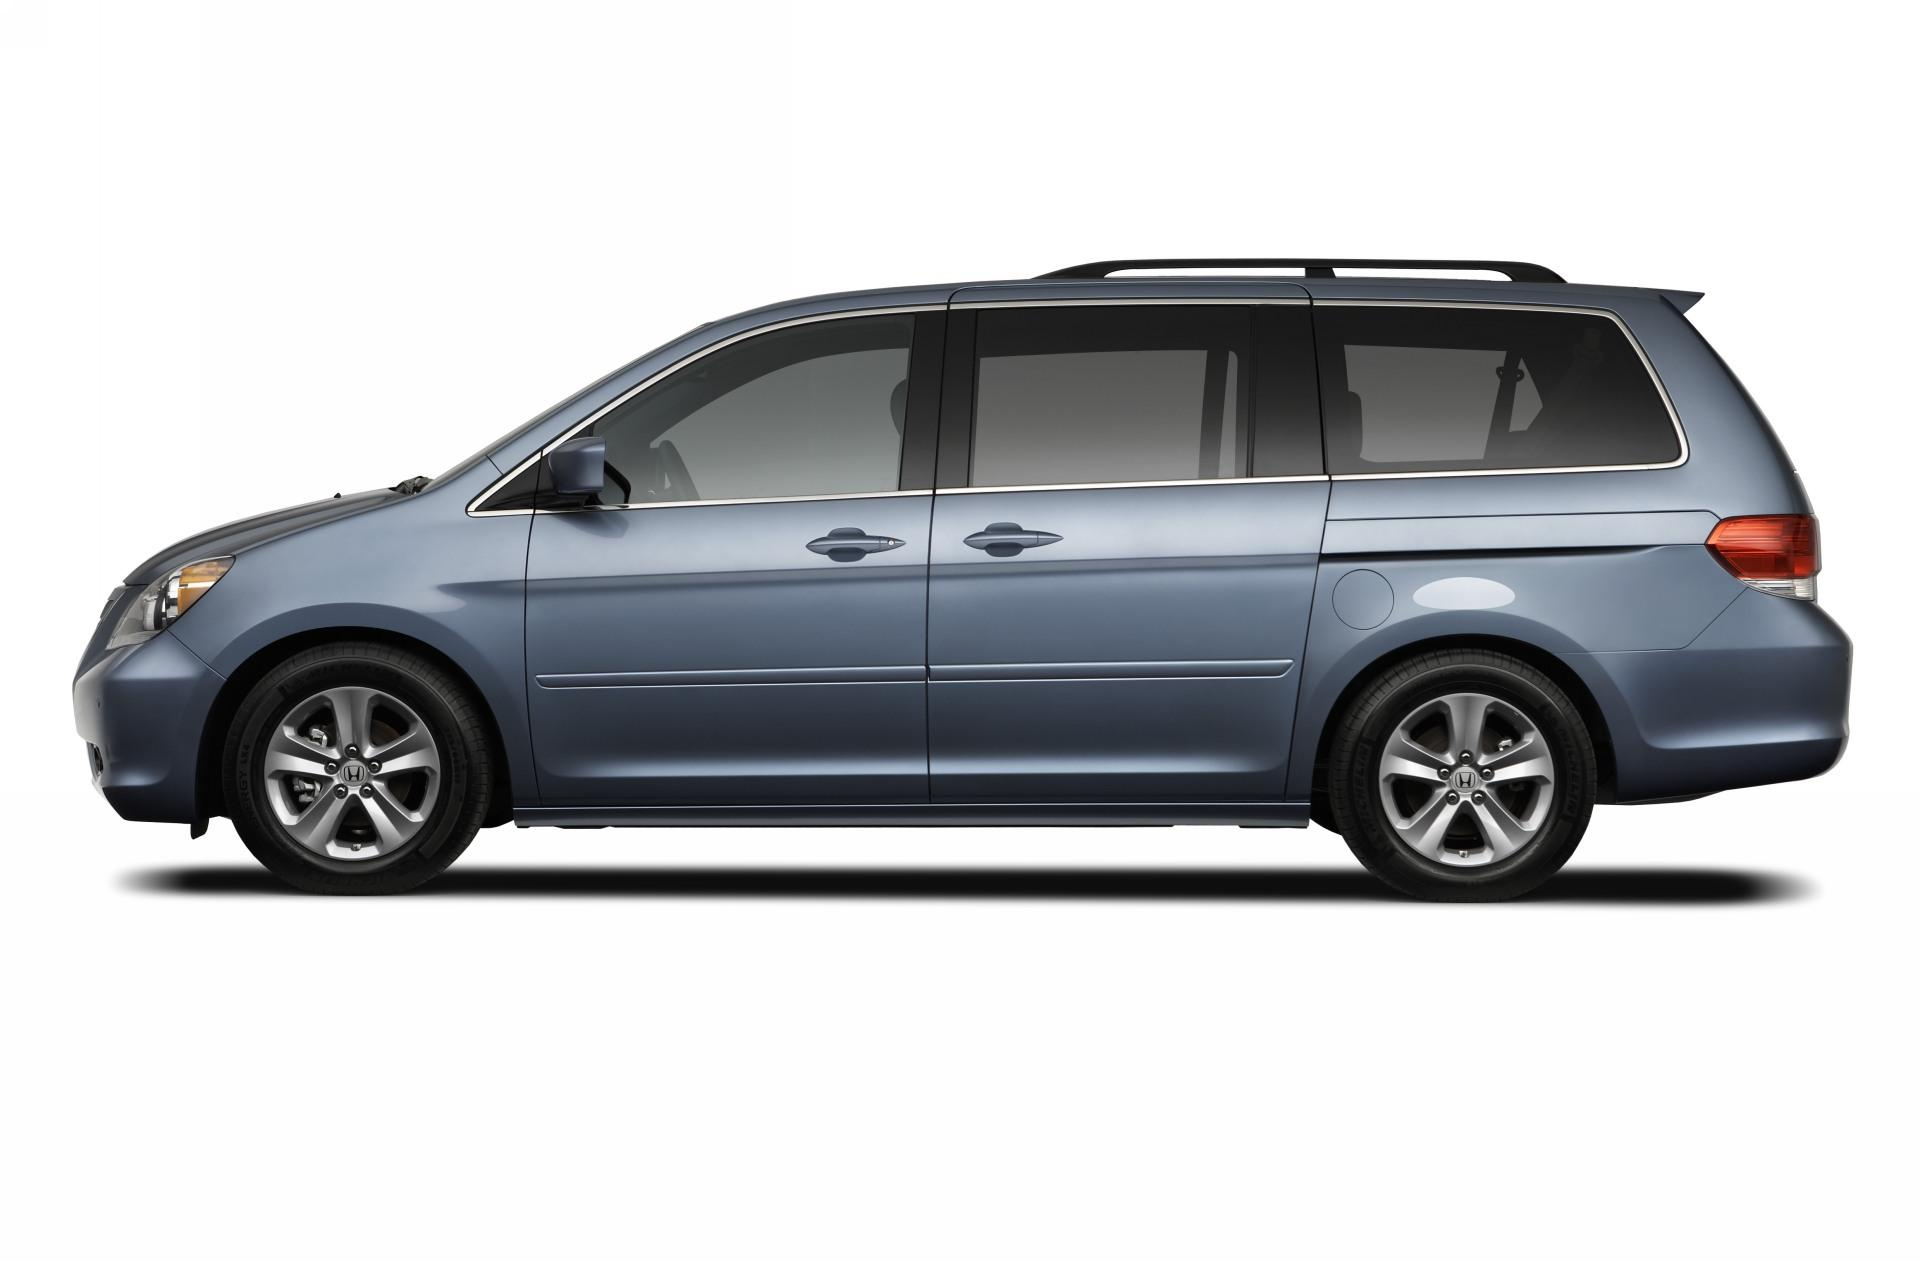 2010 Honda Odyssey News and Information